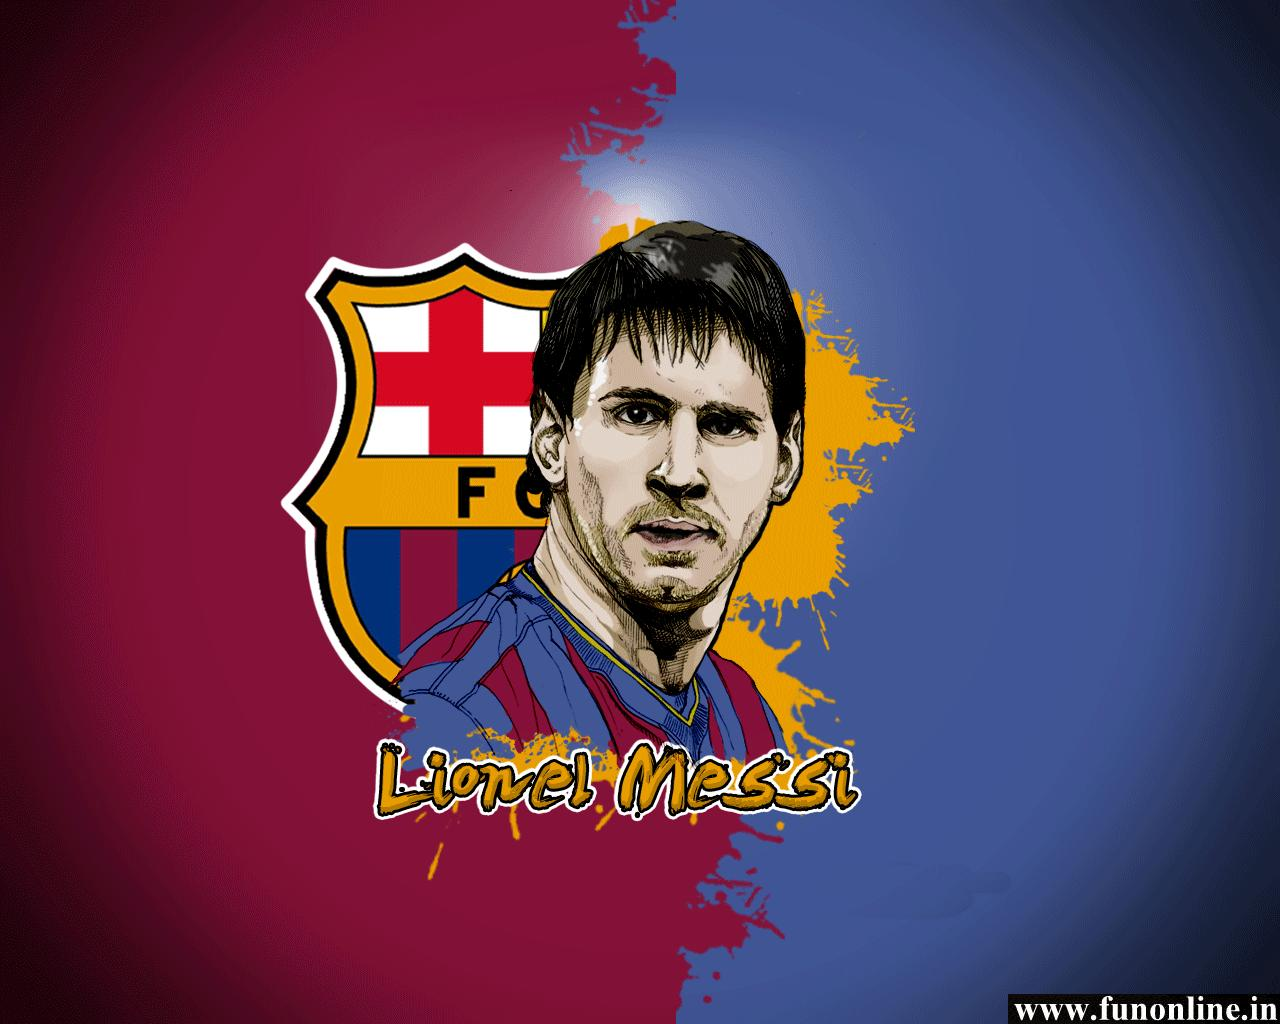 Lionel Messi Wallpapers Download Amazing Lionel Messi HD Wallpaper 1280x1024